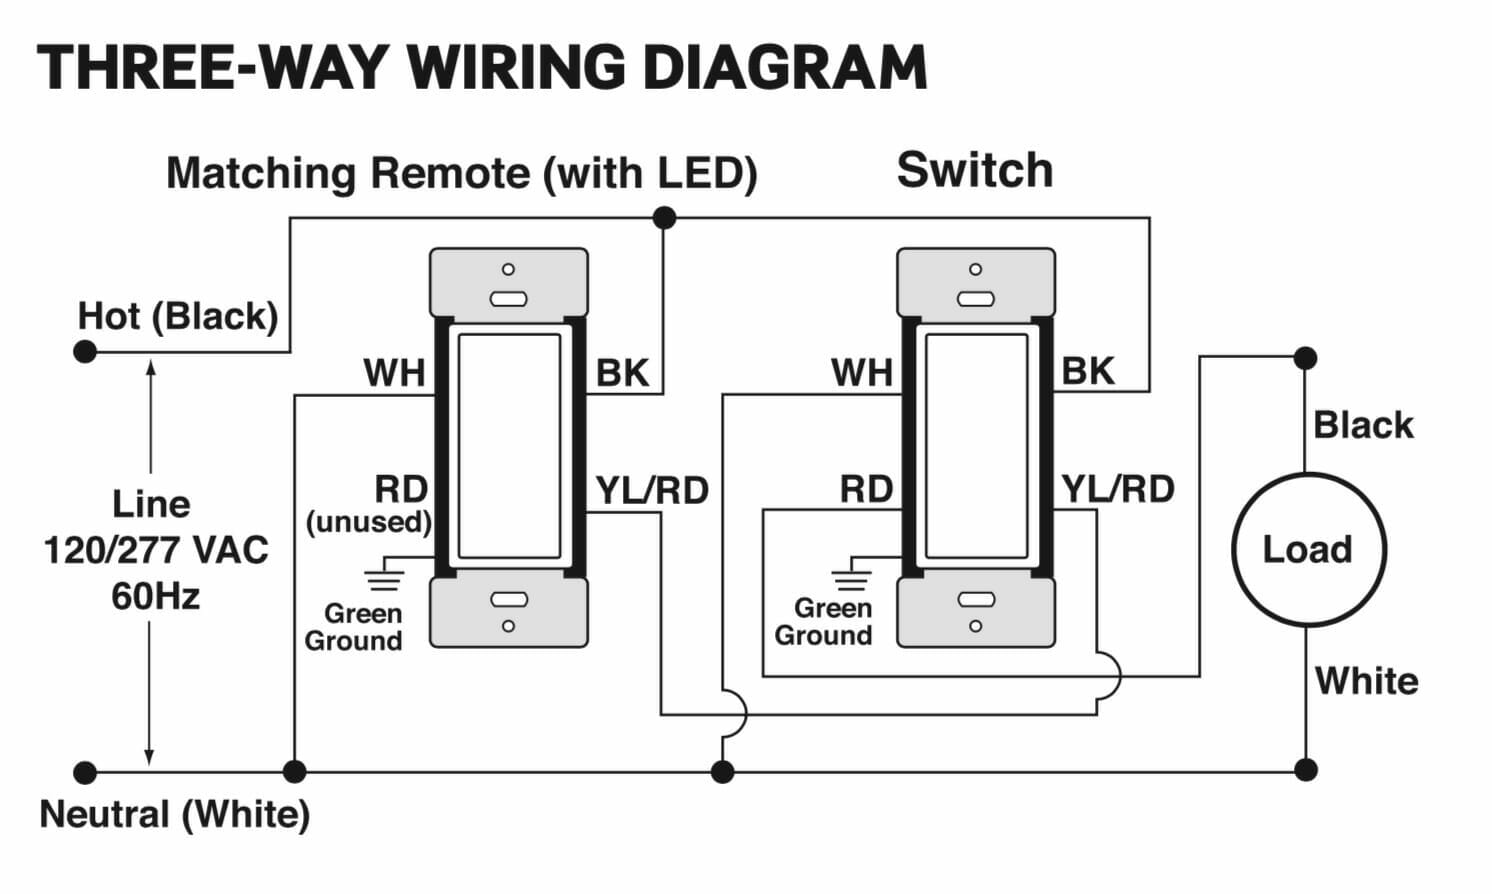 3 pole light dimmer switch wiring diagram wr 7907  warmer wiring diagram further lutron single pole dimmer  warmer wiring diagram further lutron